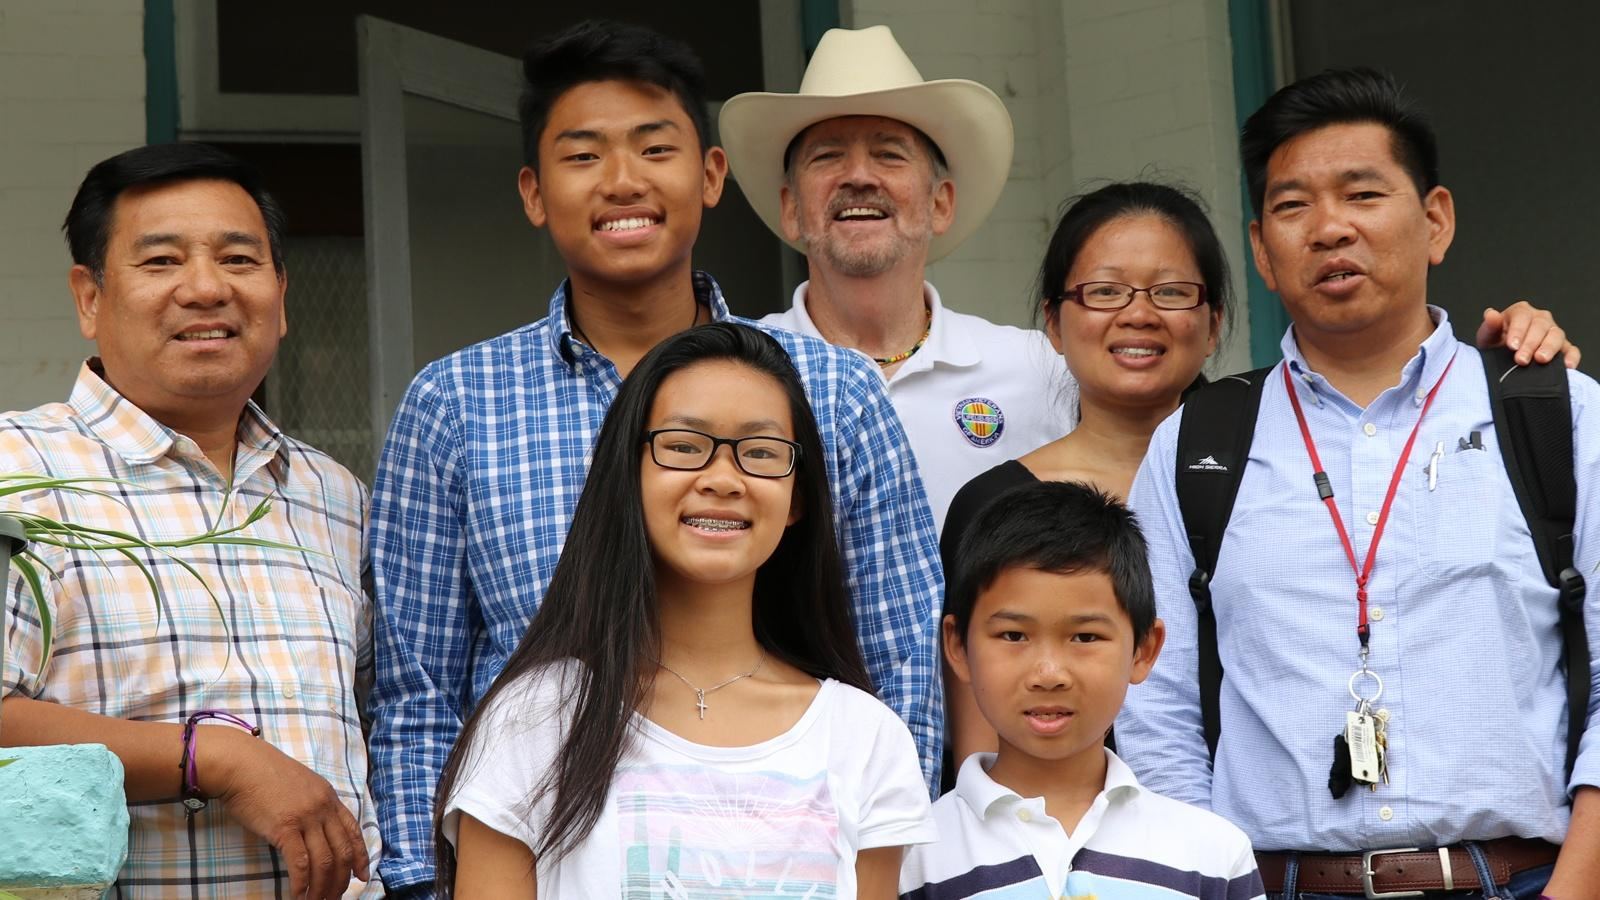 Brothers Minh and Tom Trân, their family, and Vietnam veteran Norm Murray.